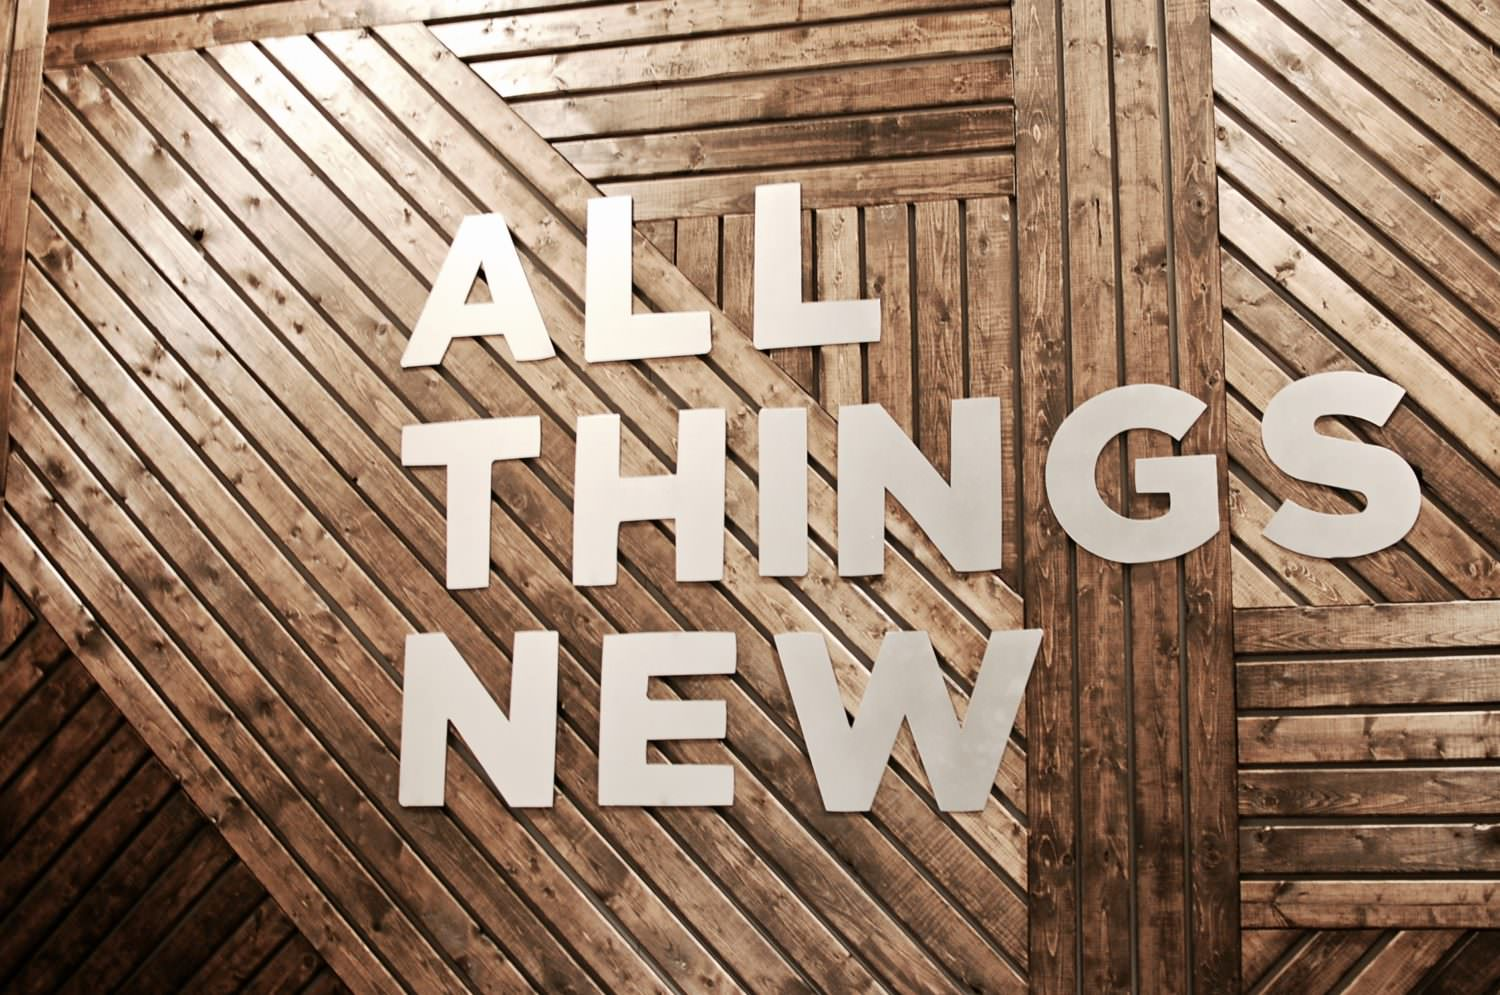 Modern Wall - All Things New